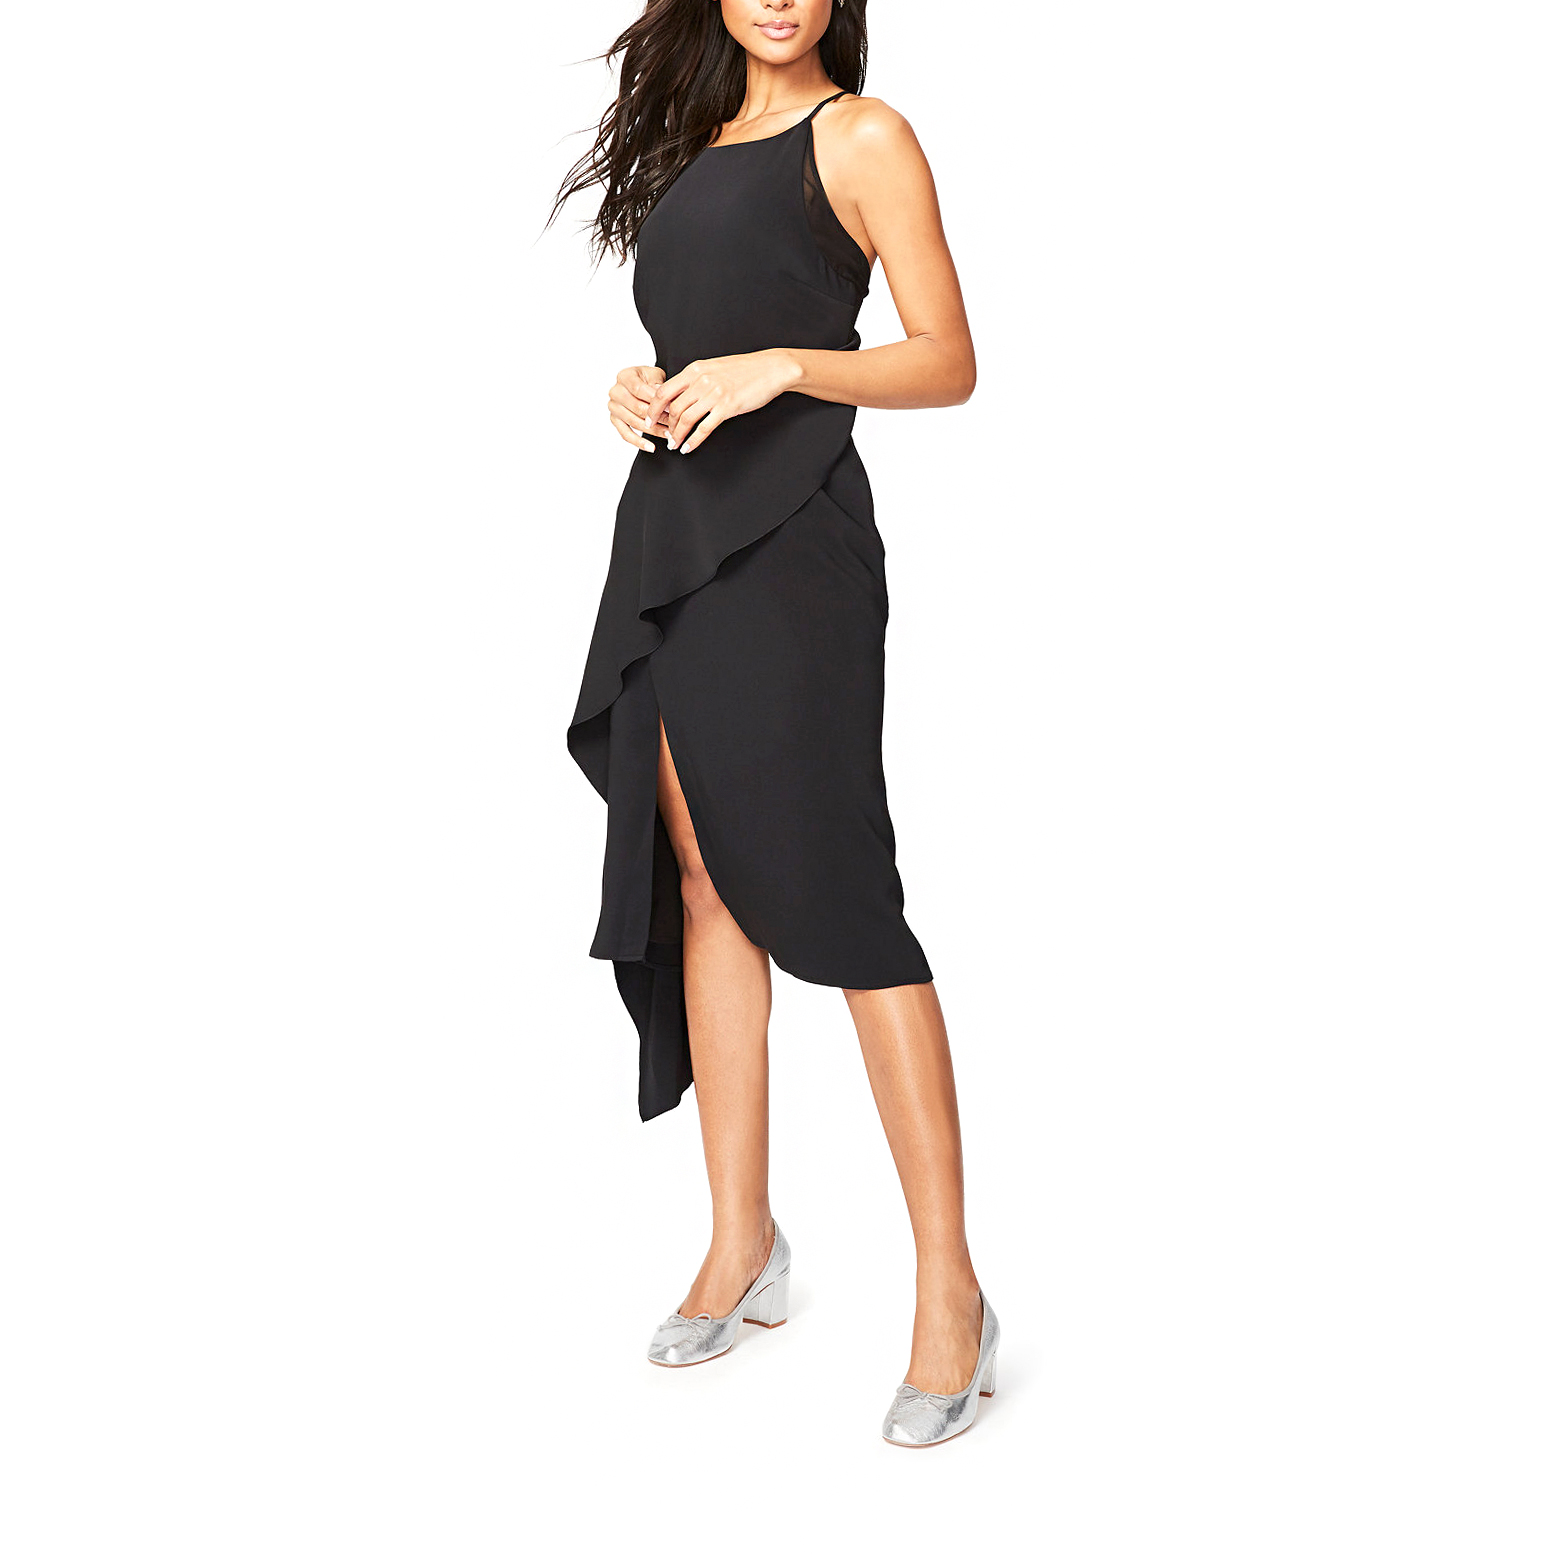 rachel roy ruffled midi dress